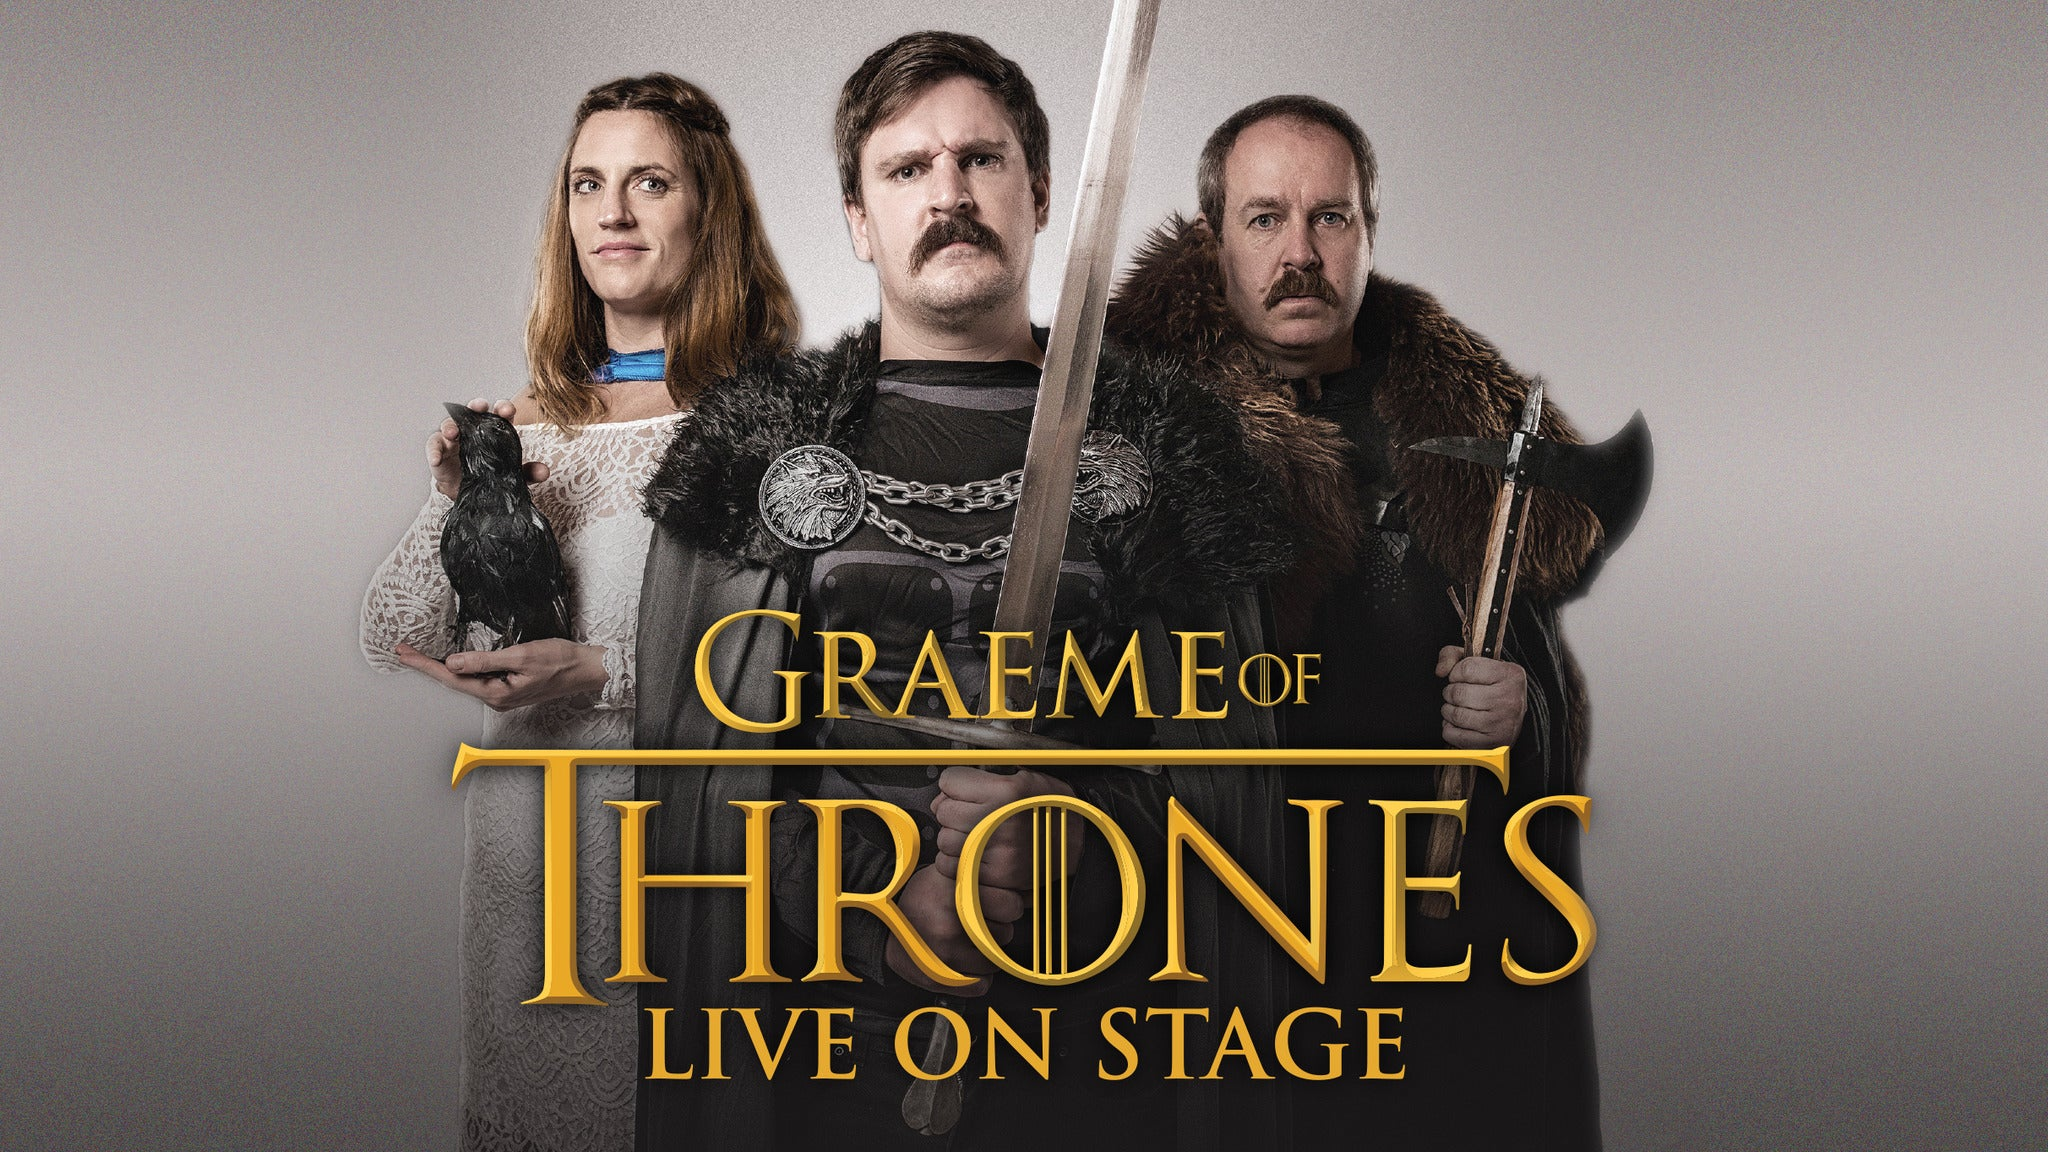 Graeme of Thrones at Broadway Playhouse at Water Tower Place